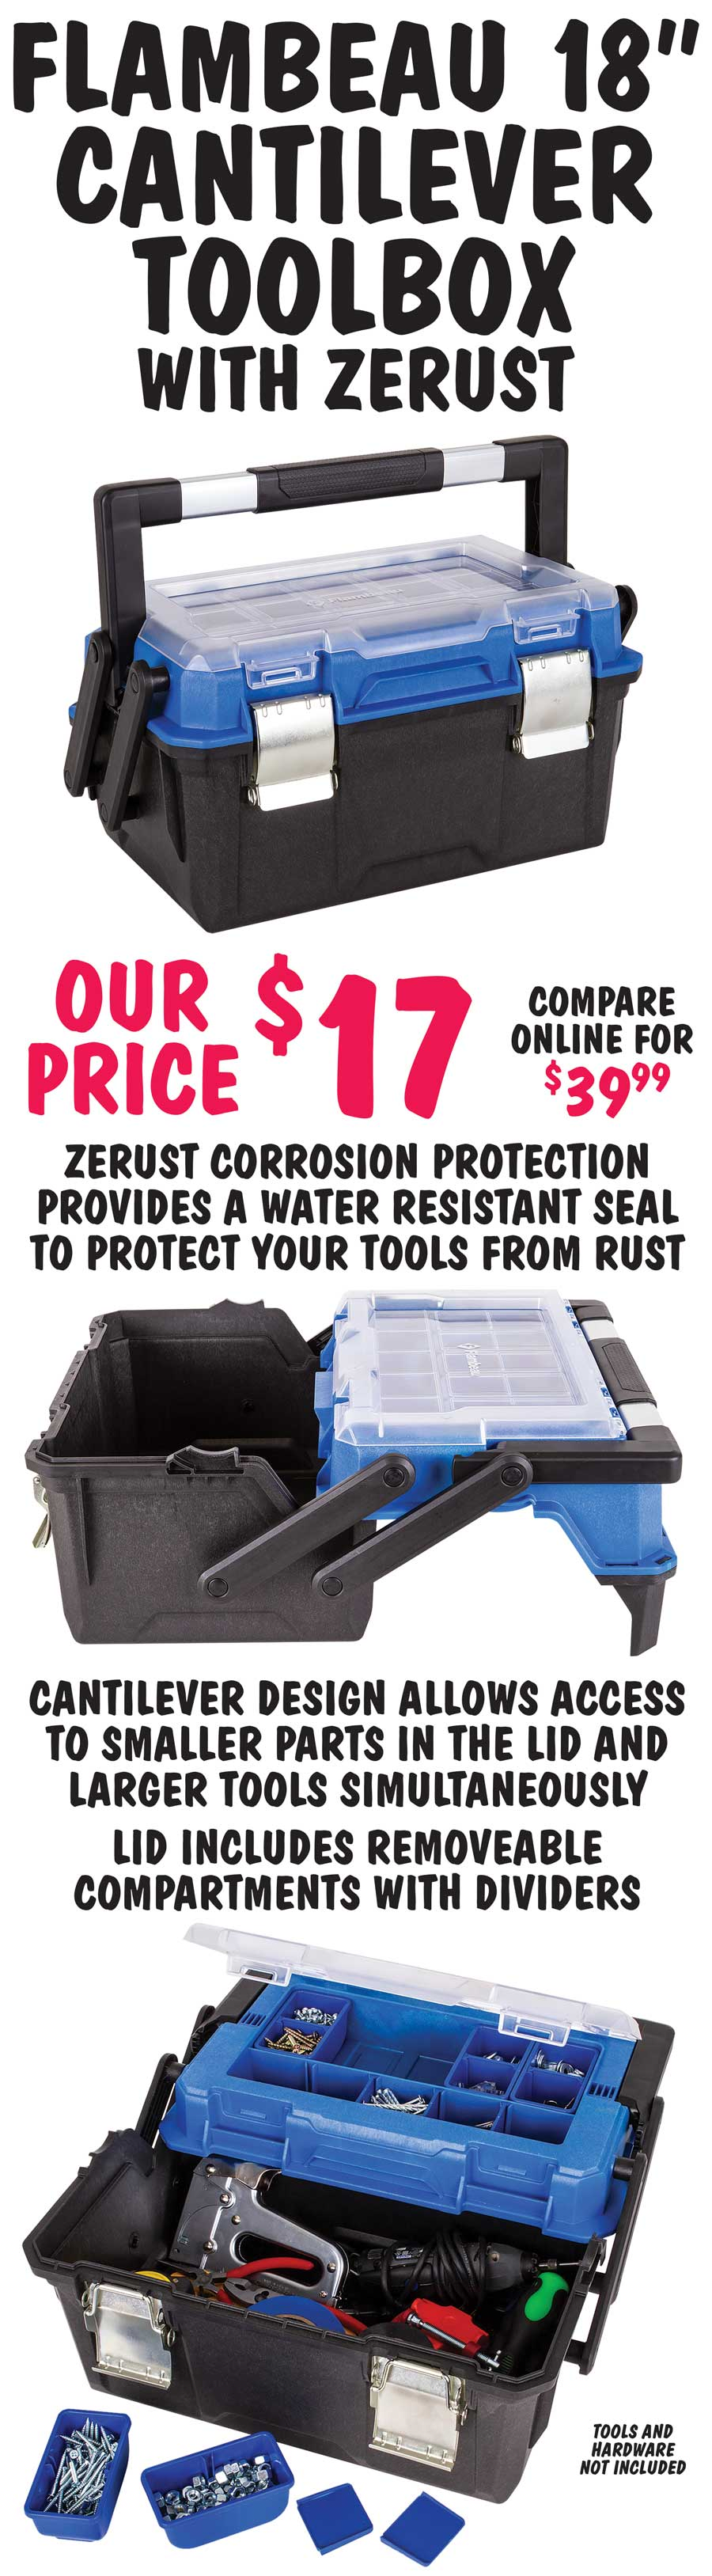 Flambeau 18 inch Cantilever Toolbox with Zerust - $17